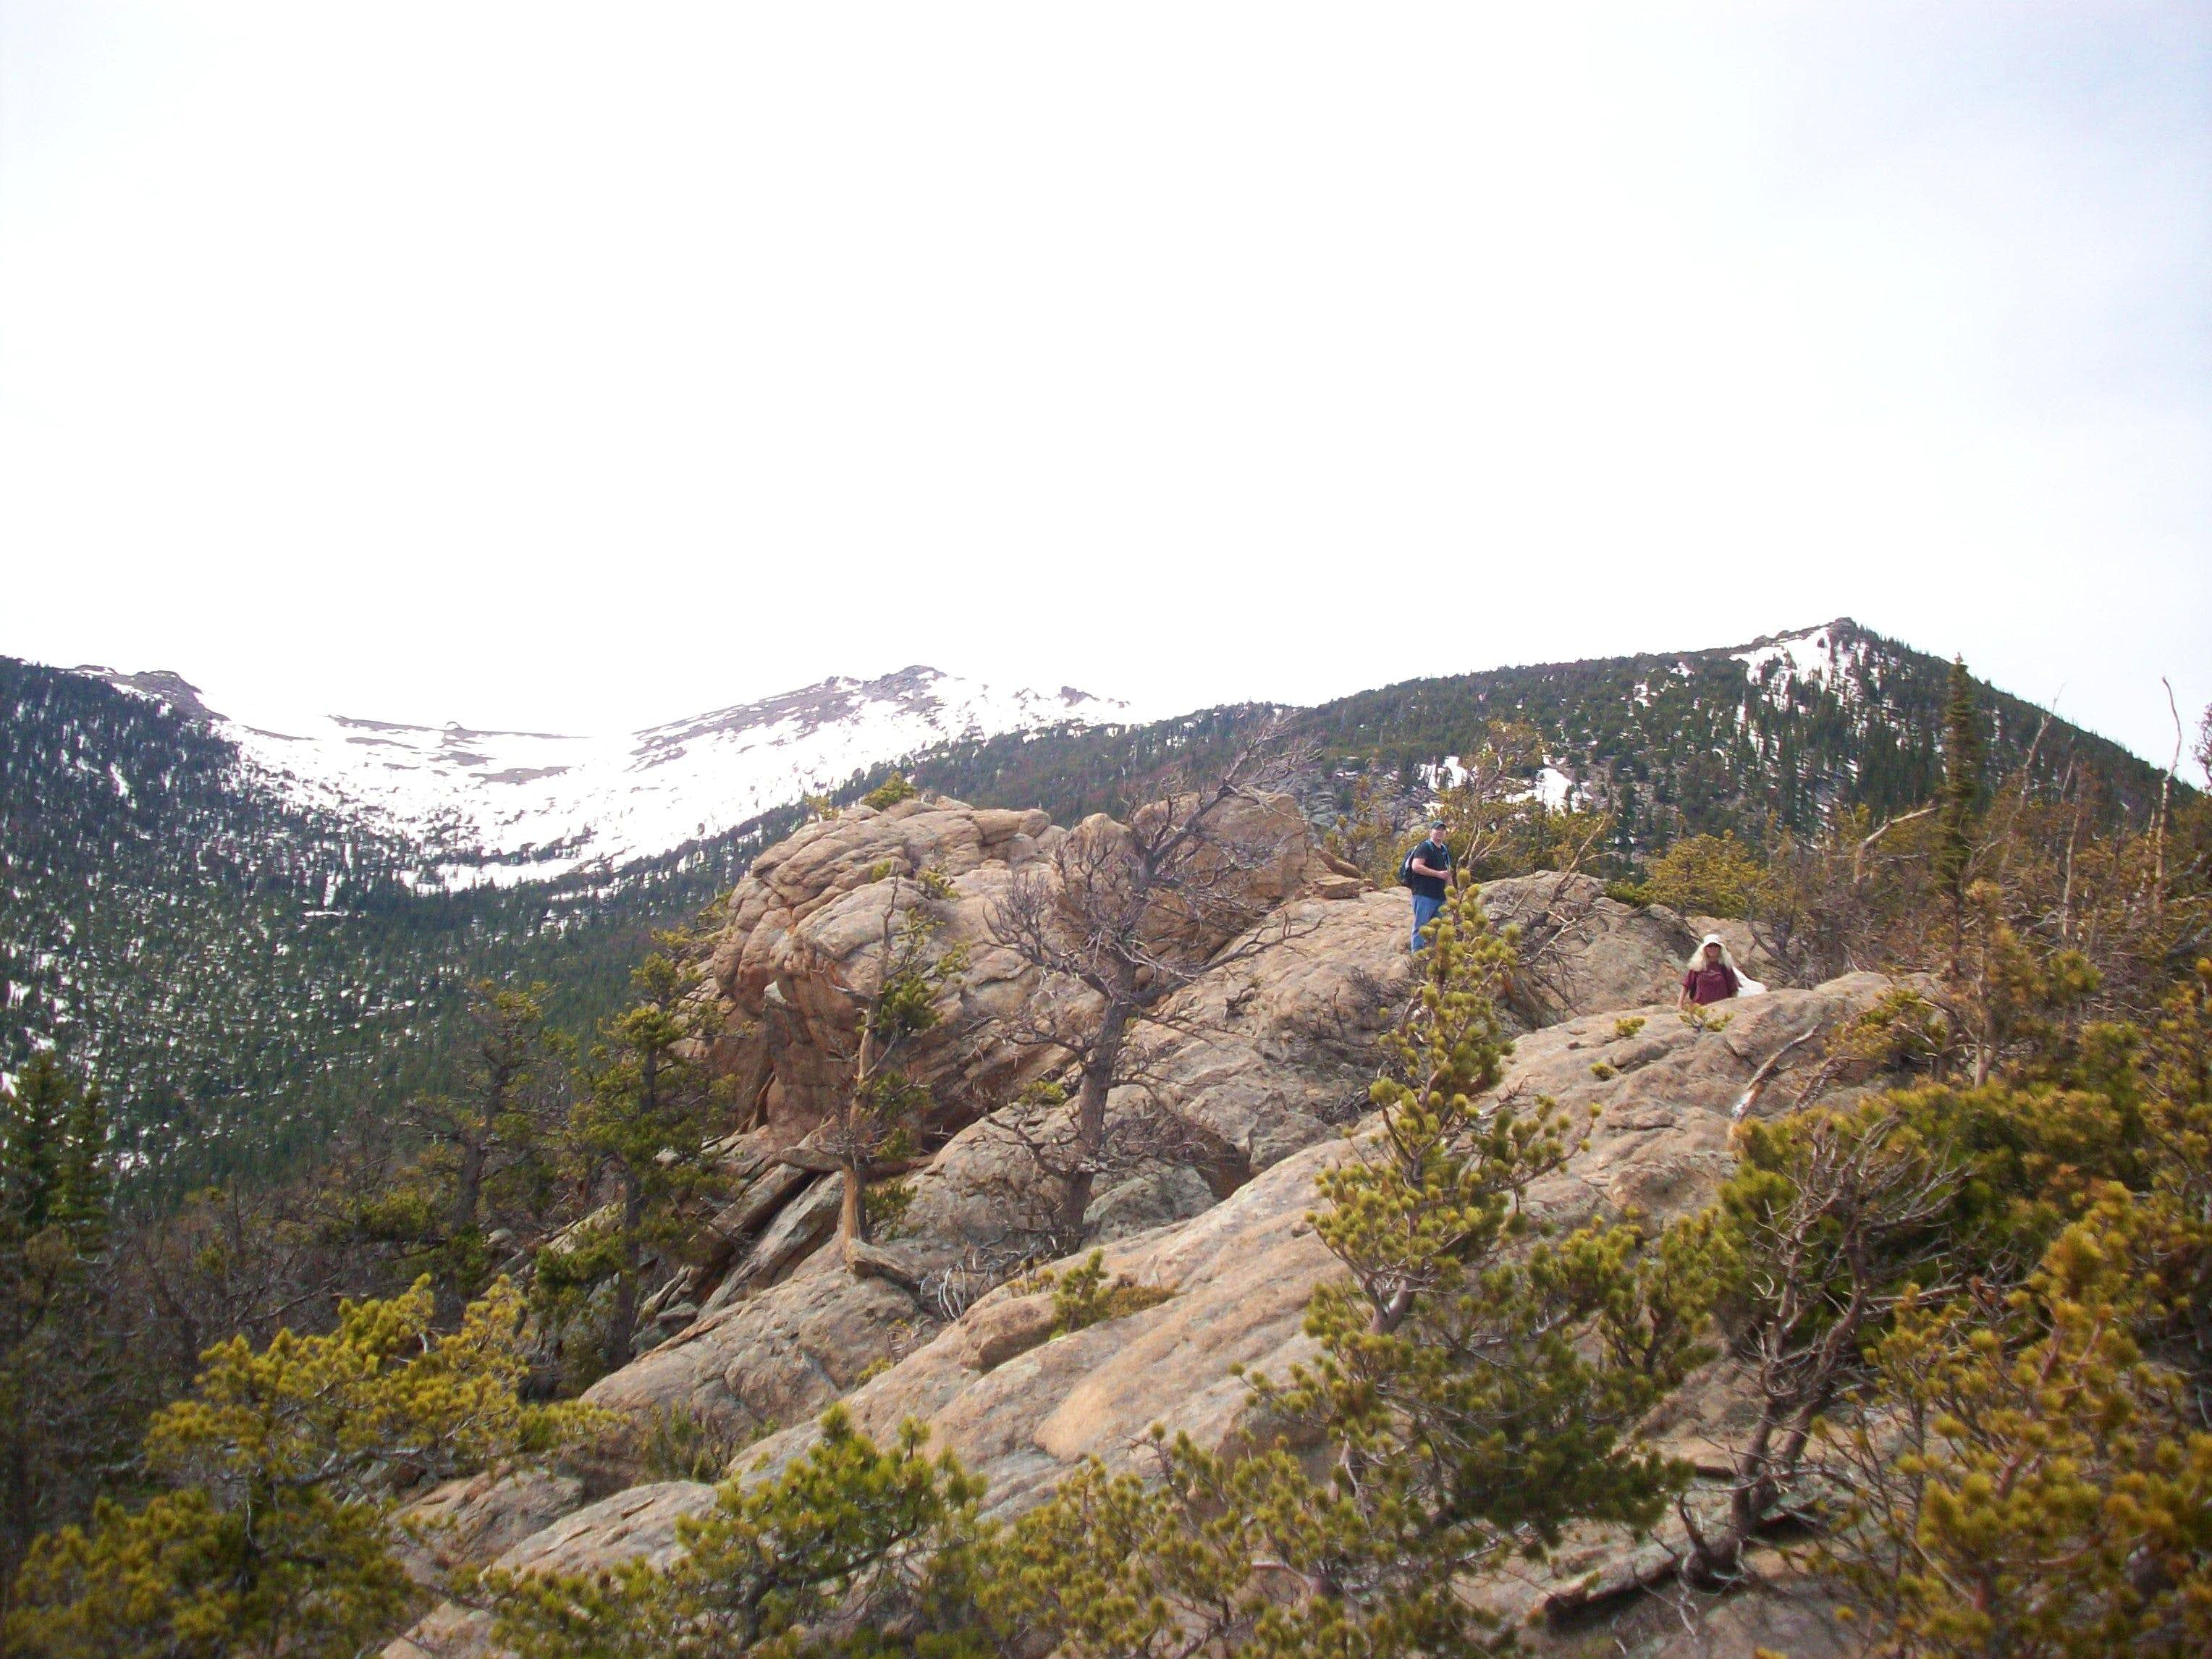 West slope from Ute Meadows